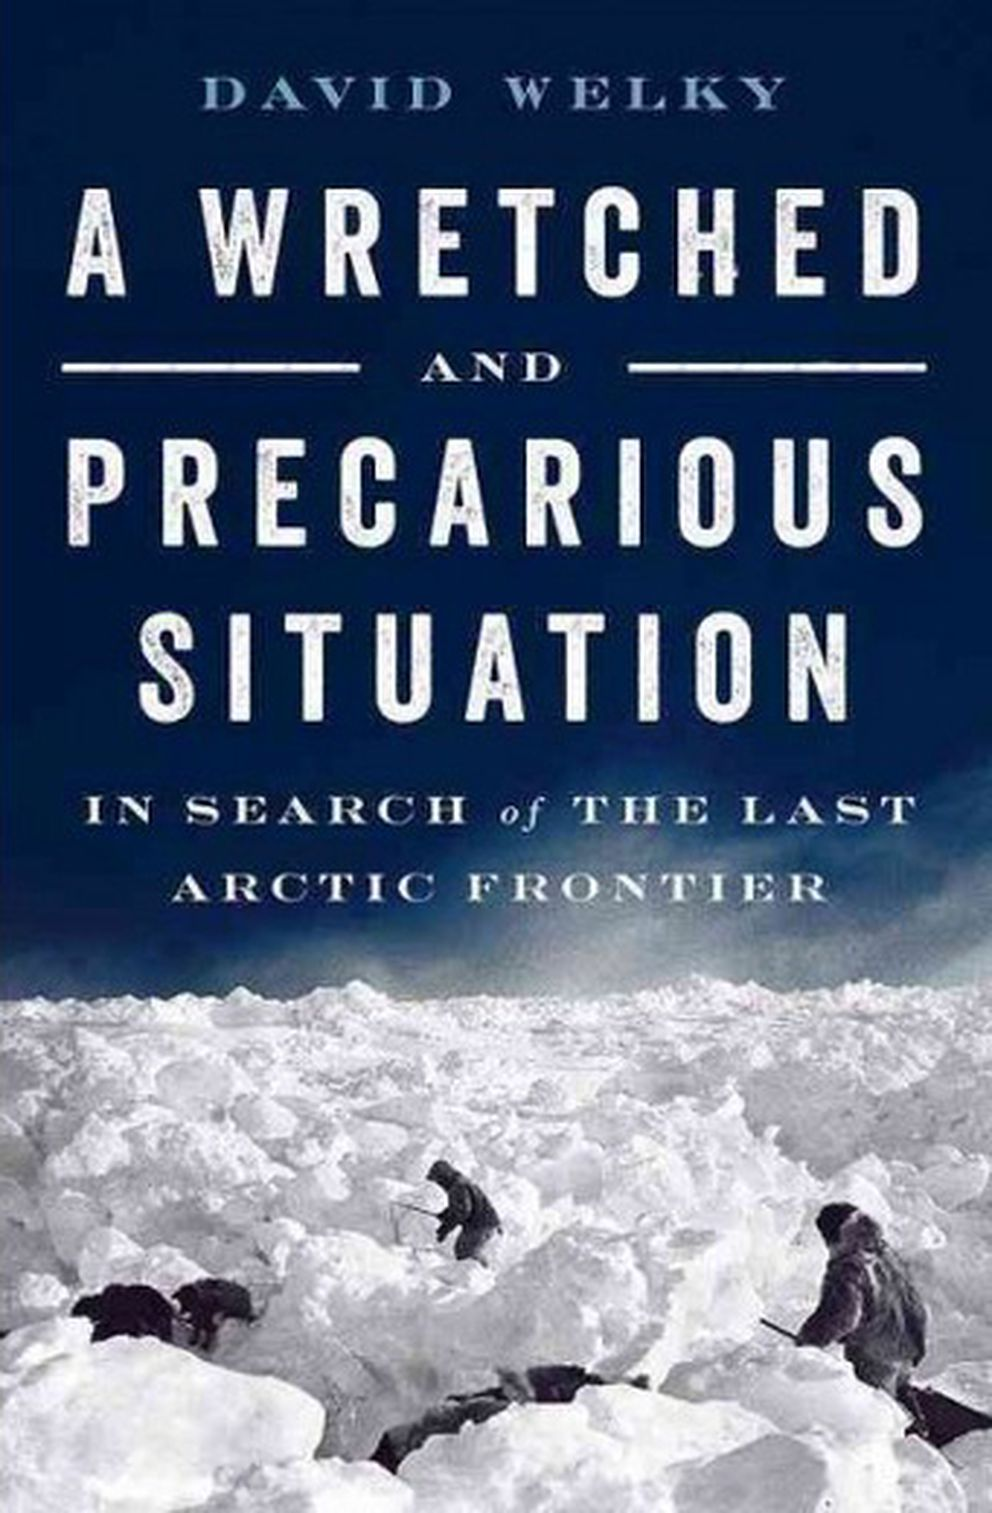 """A Wretched and Precarious Situation, "" by David Welky"